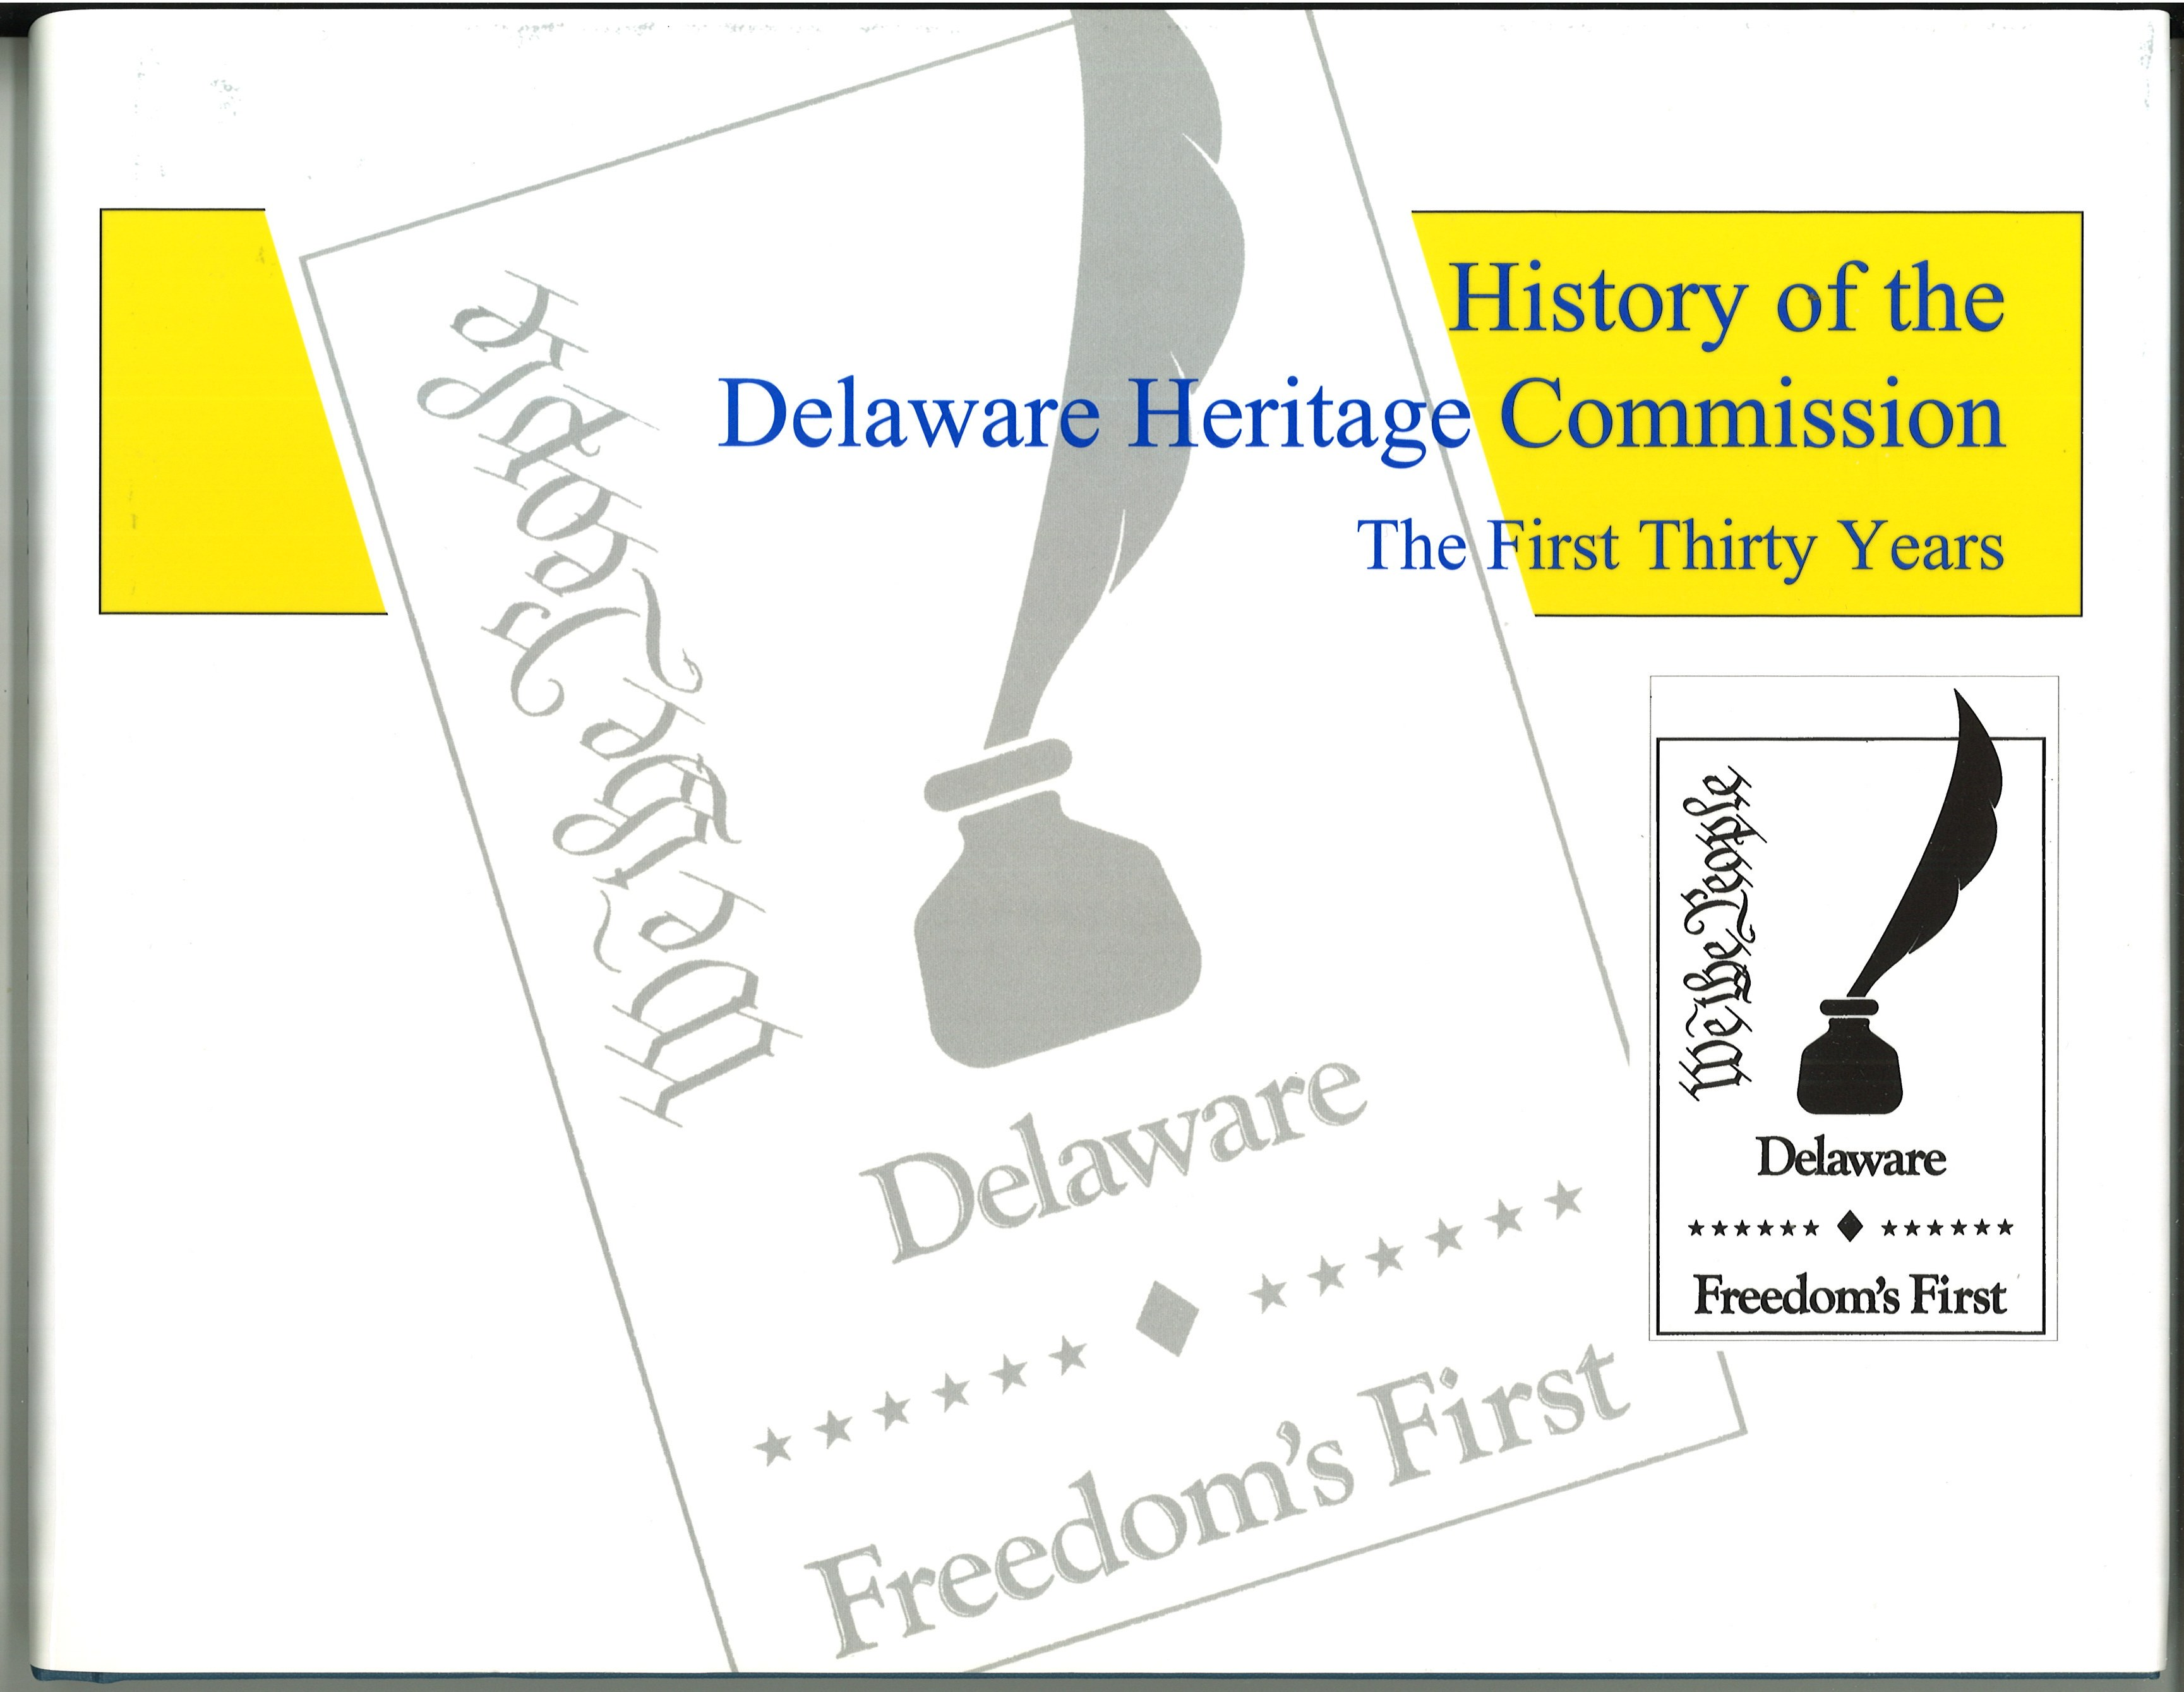 History of the Delaware Heritage Commission- The First 30 Years, by Susan Mulcahey Chase, 108 pp. Prices reflect the cost of the book PLUS S&H fee of $5.00.